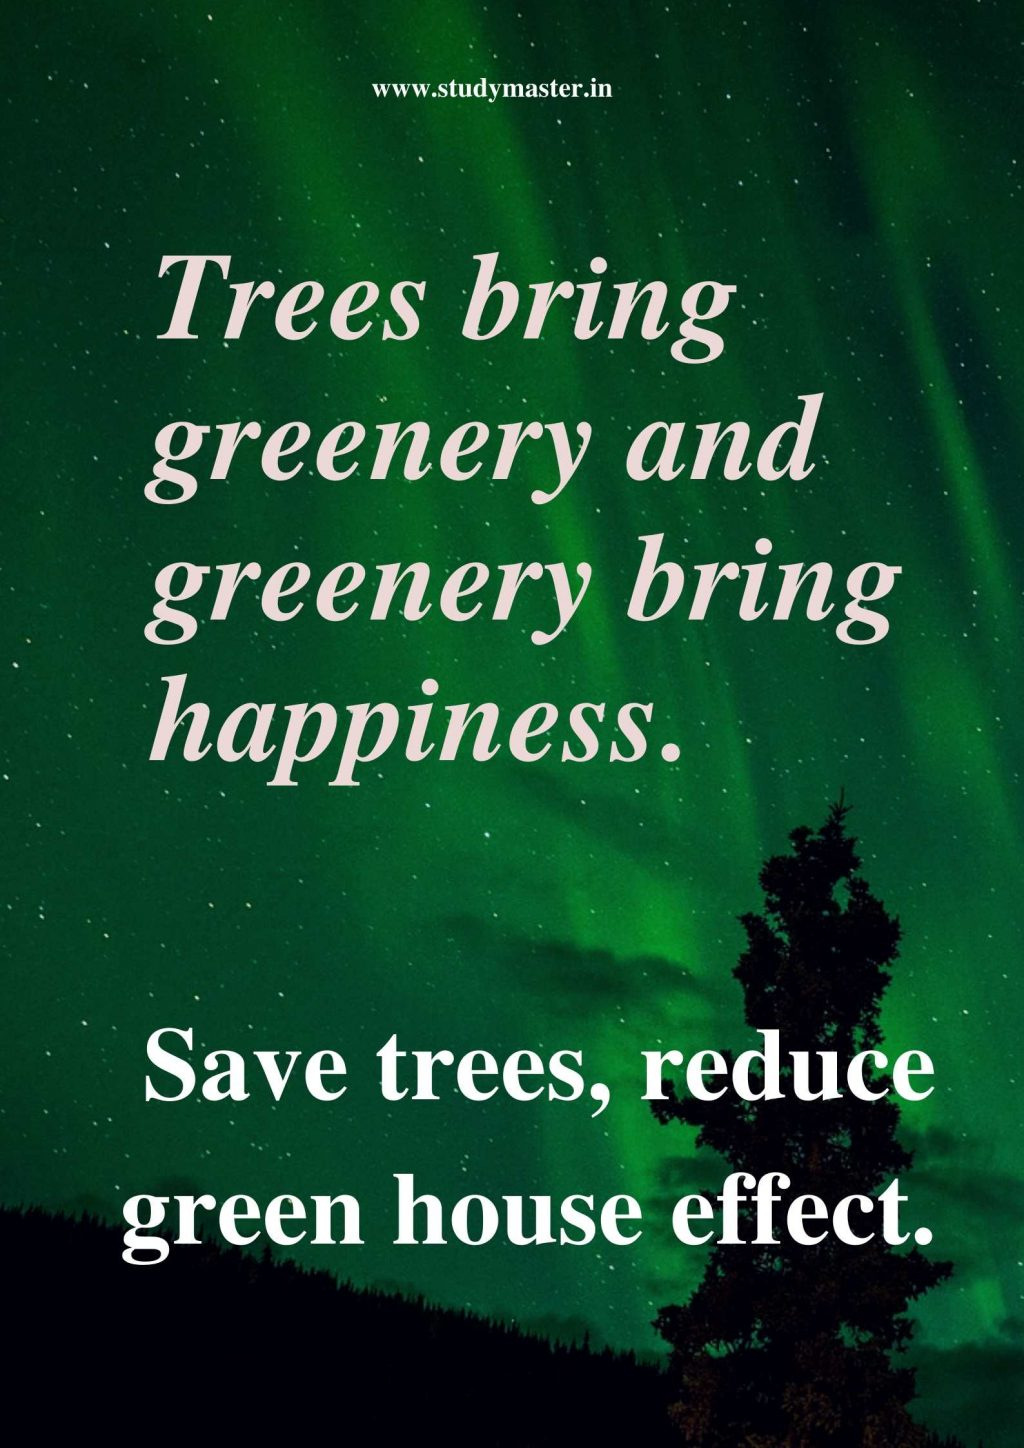 poster on save trees to draw